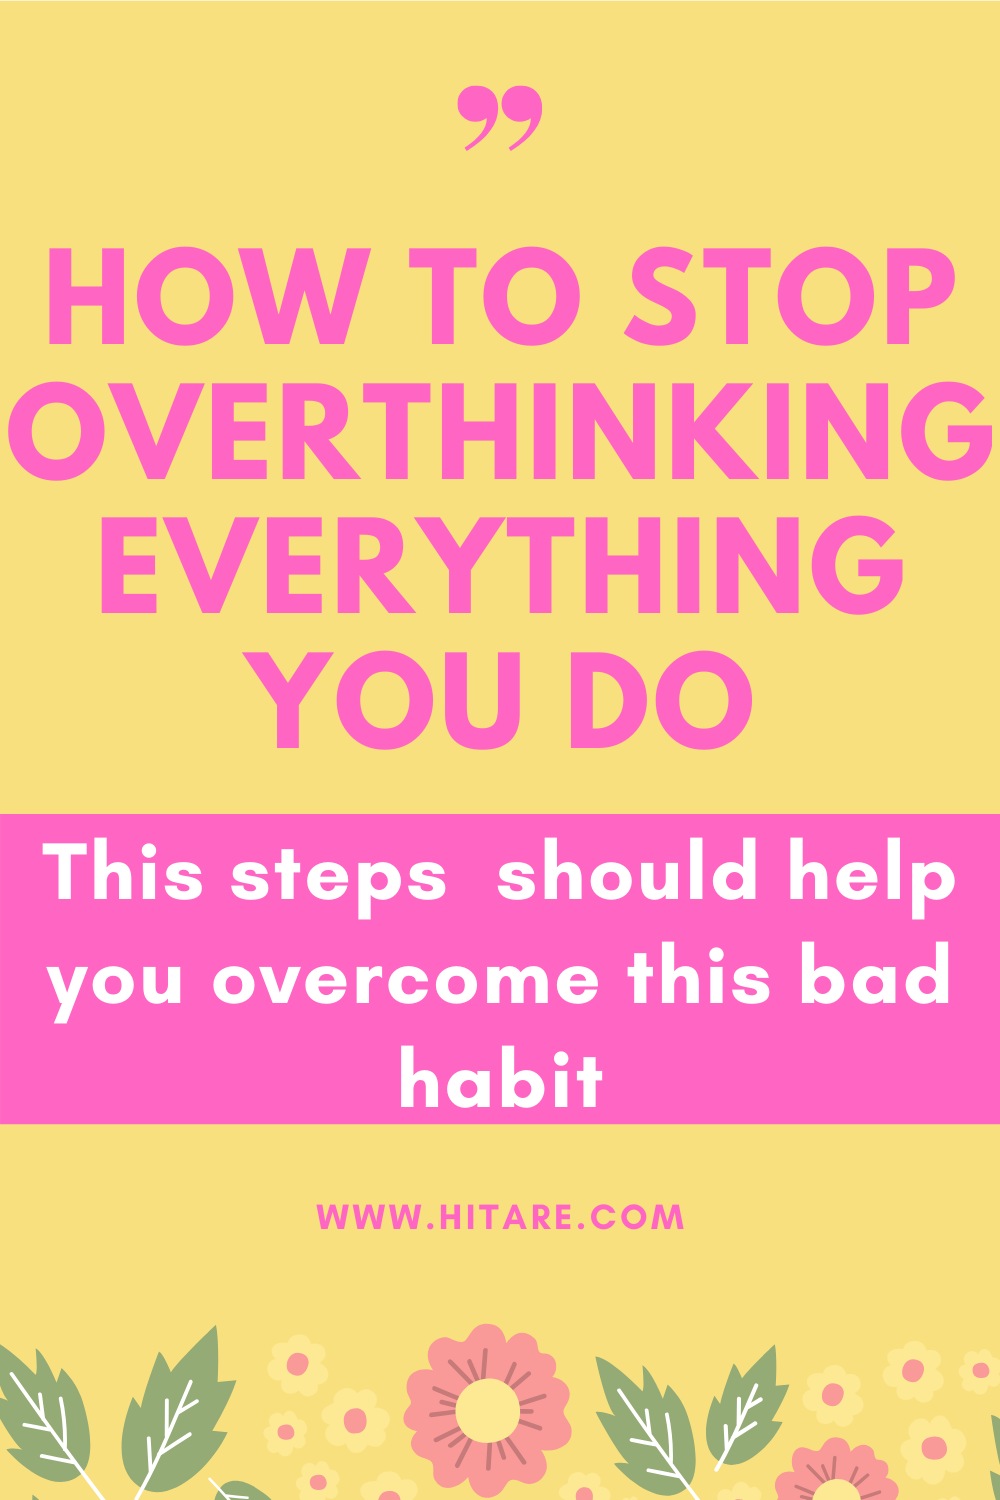 How To Stop Overthinking Everything You Do | Self ...